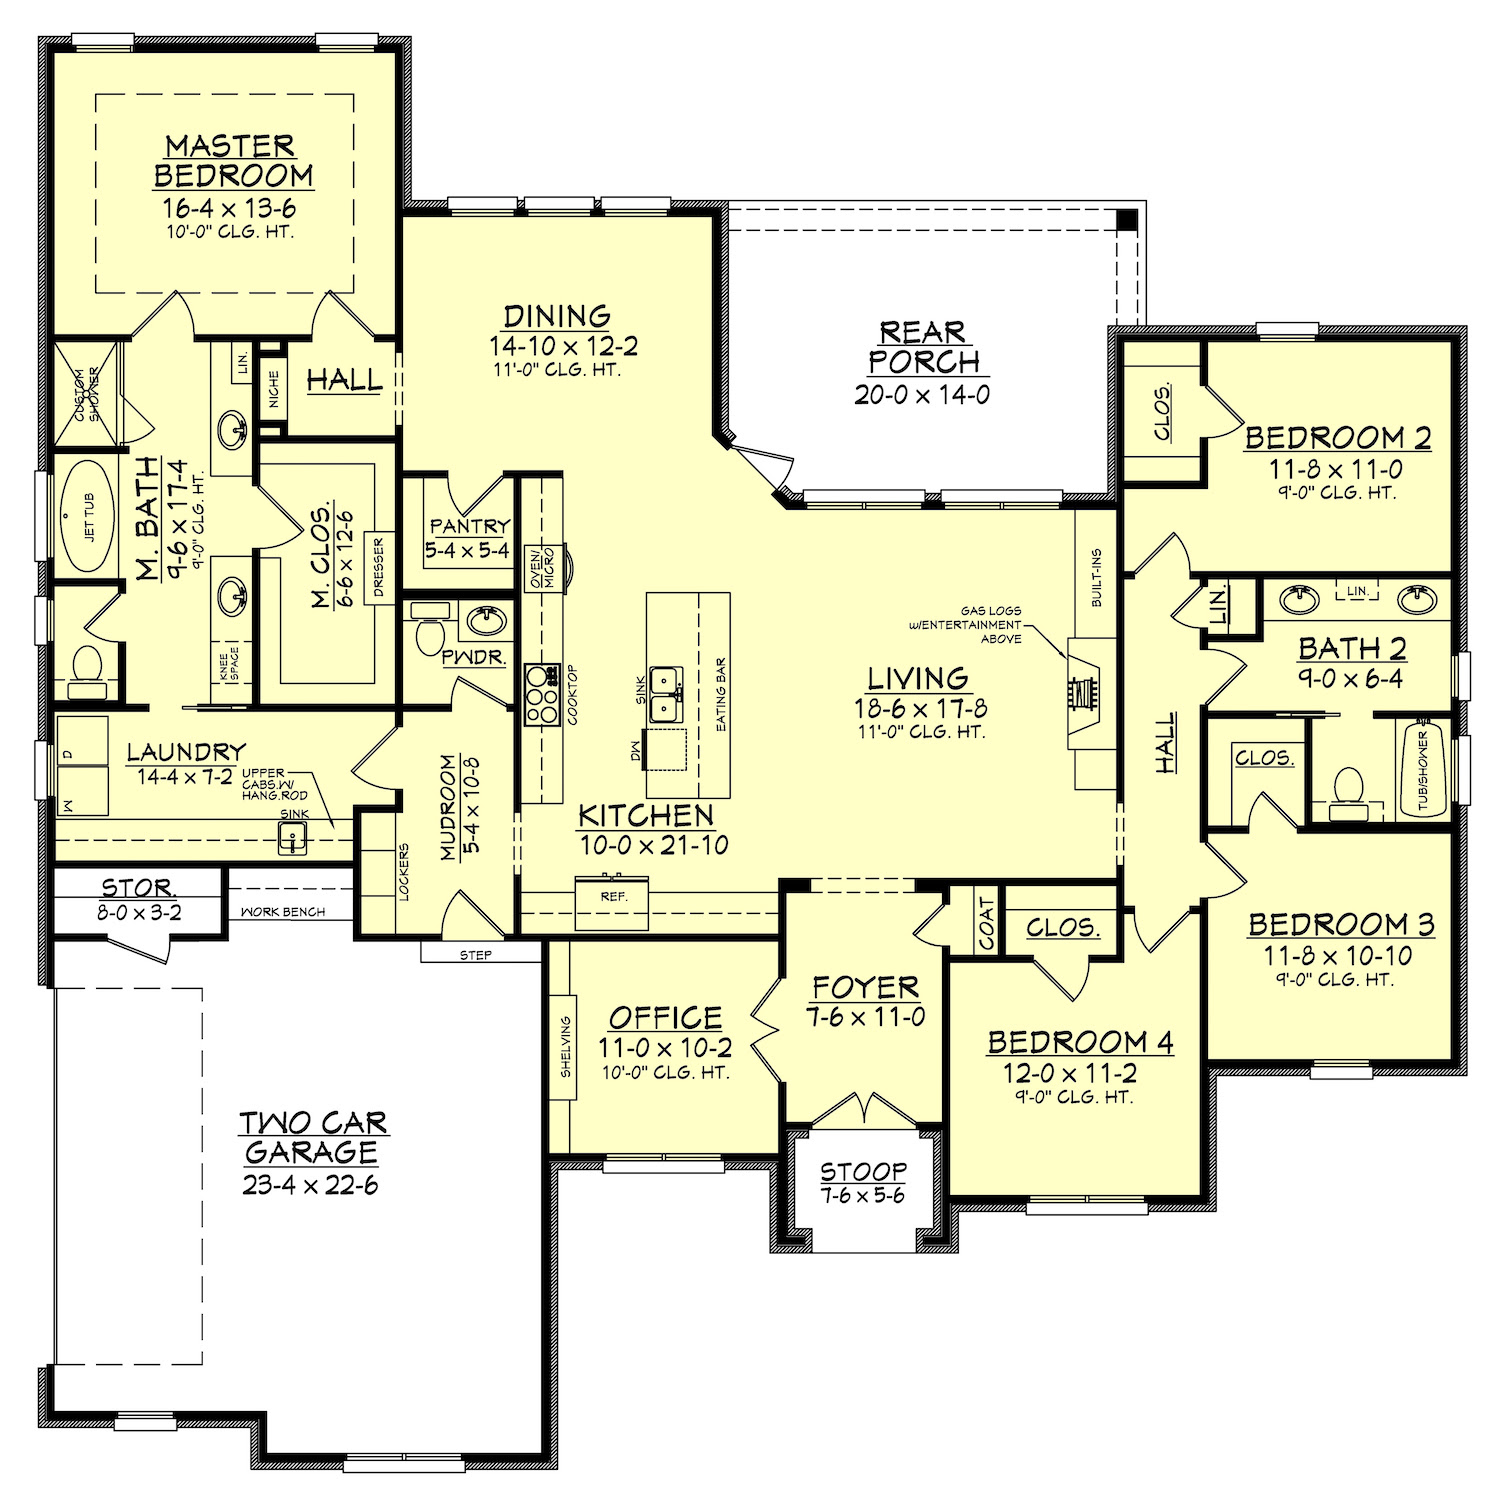 4 Bedrm, 2506 Sq Ft European House Plan 1421162 - Florida House Plan With Guest Wing 86030BW Architectural Designs HousePlans